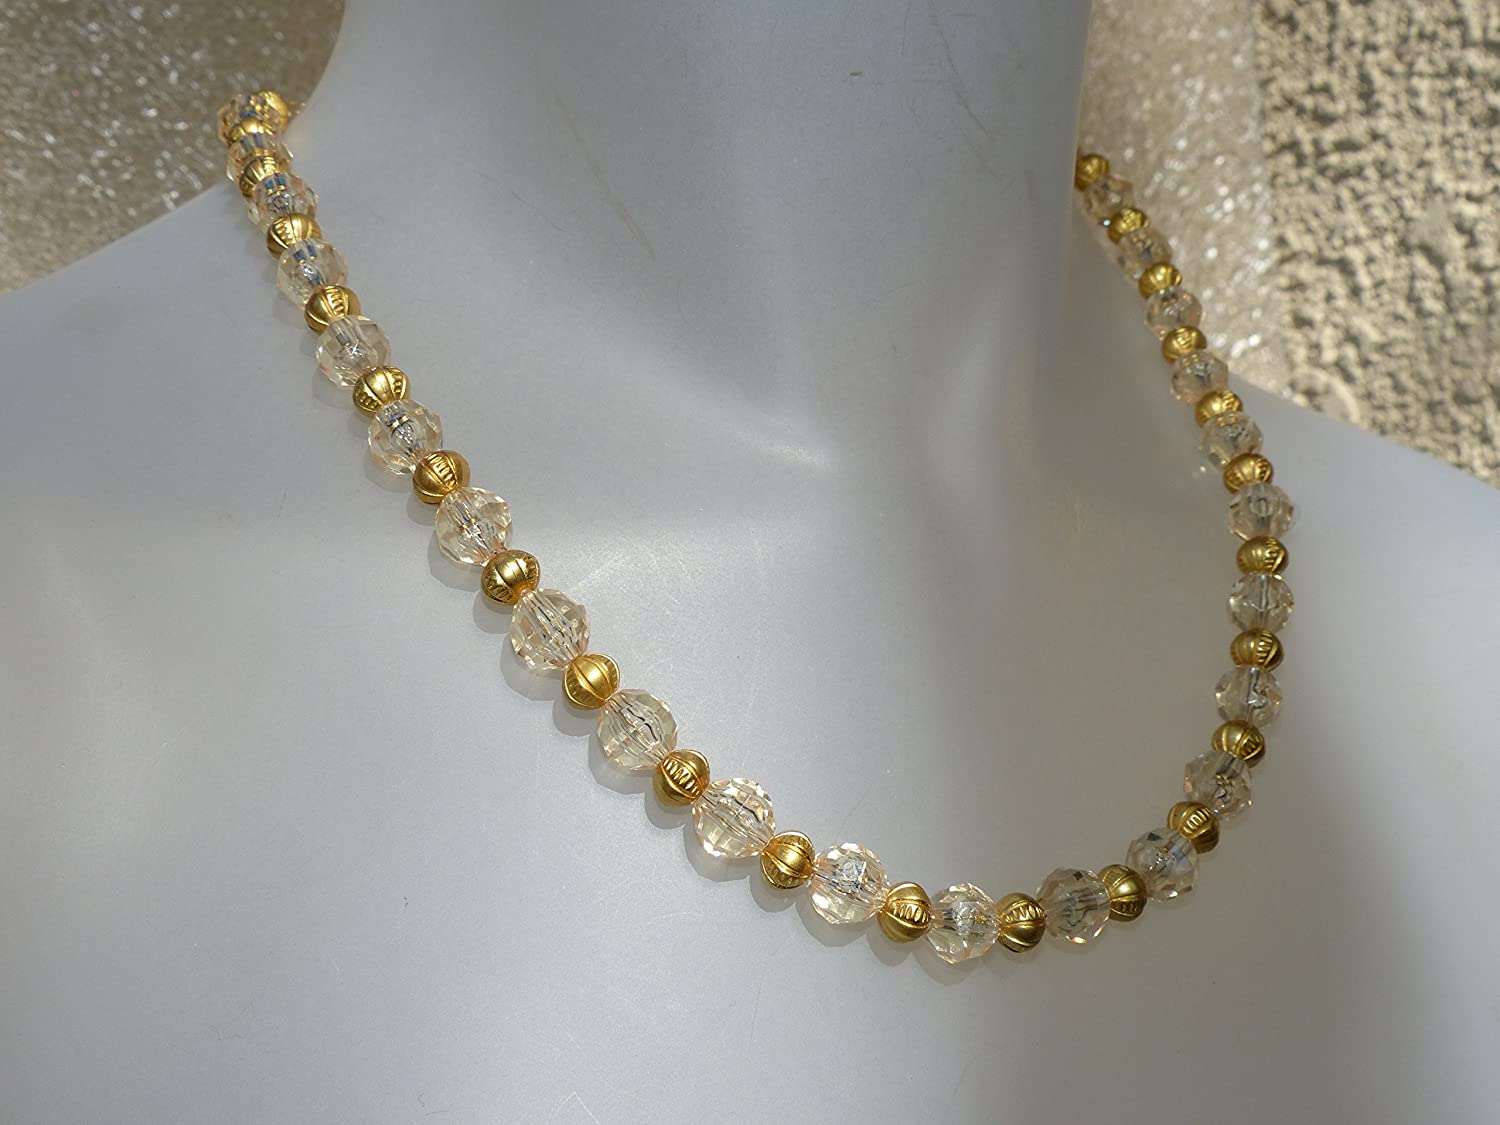 Bombing new work Sparkling Omaha Mall clear and gold bead tone necklace